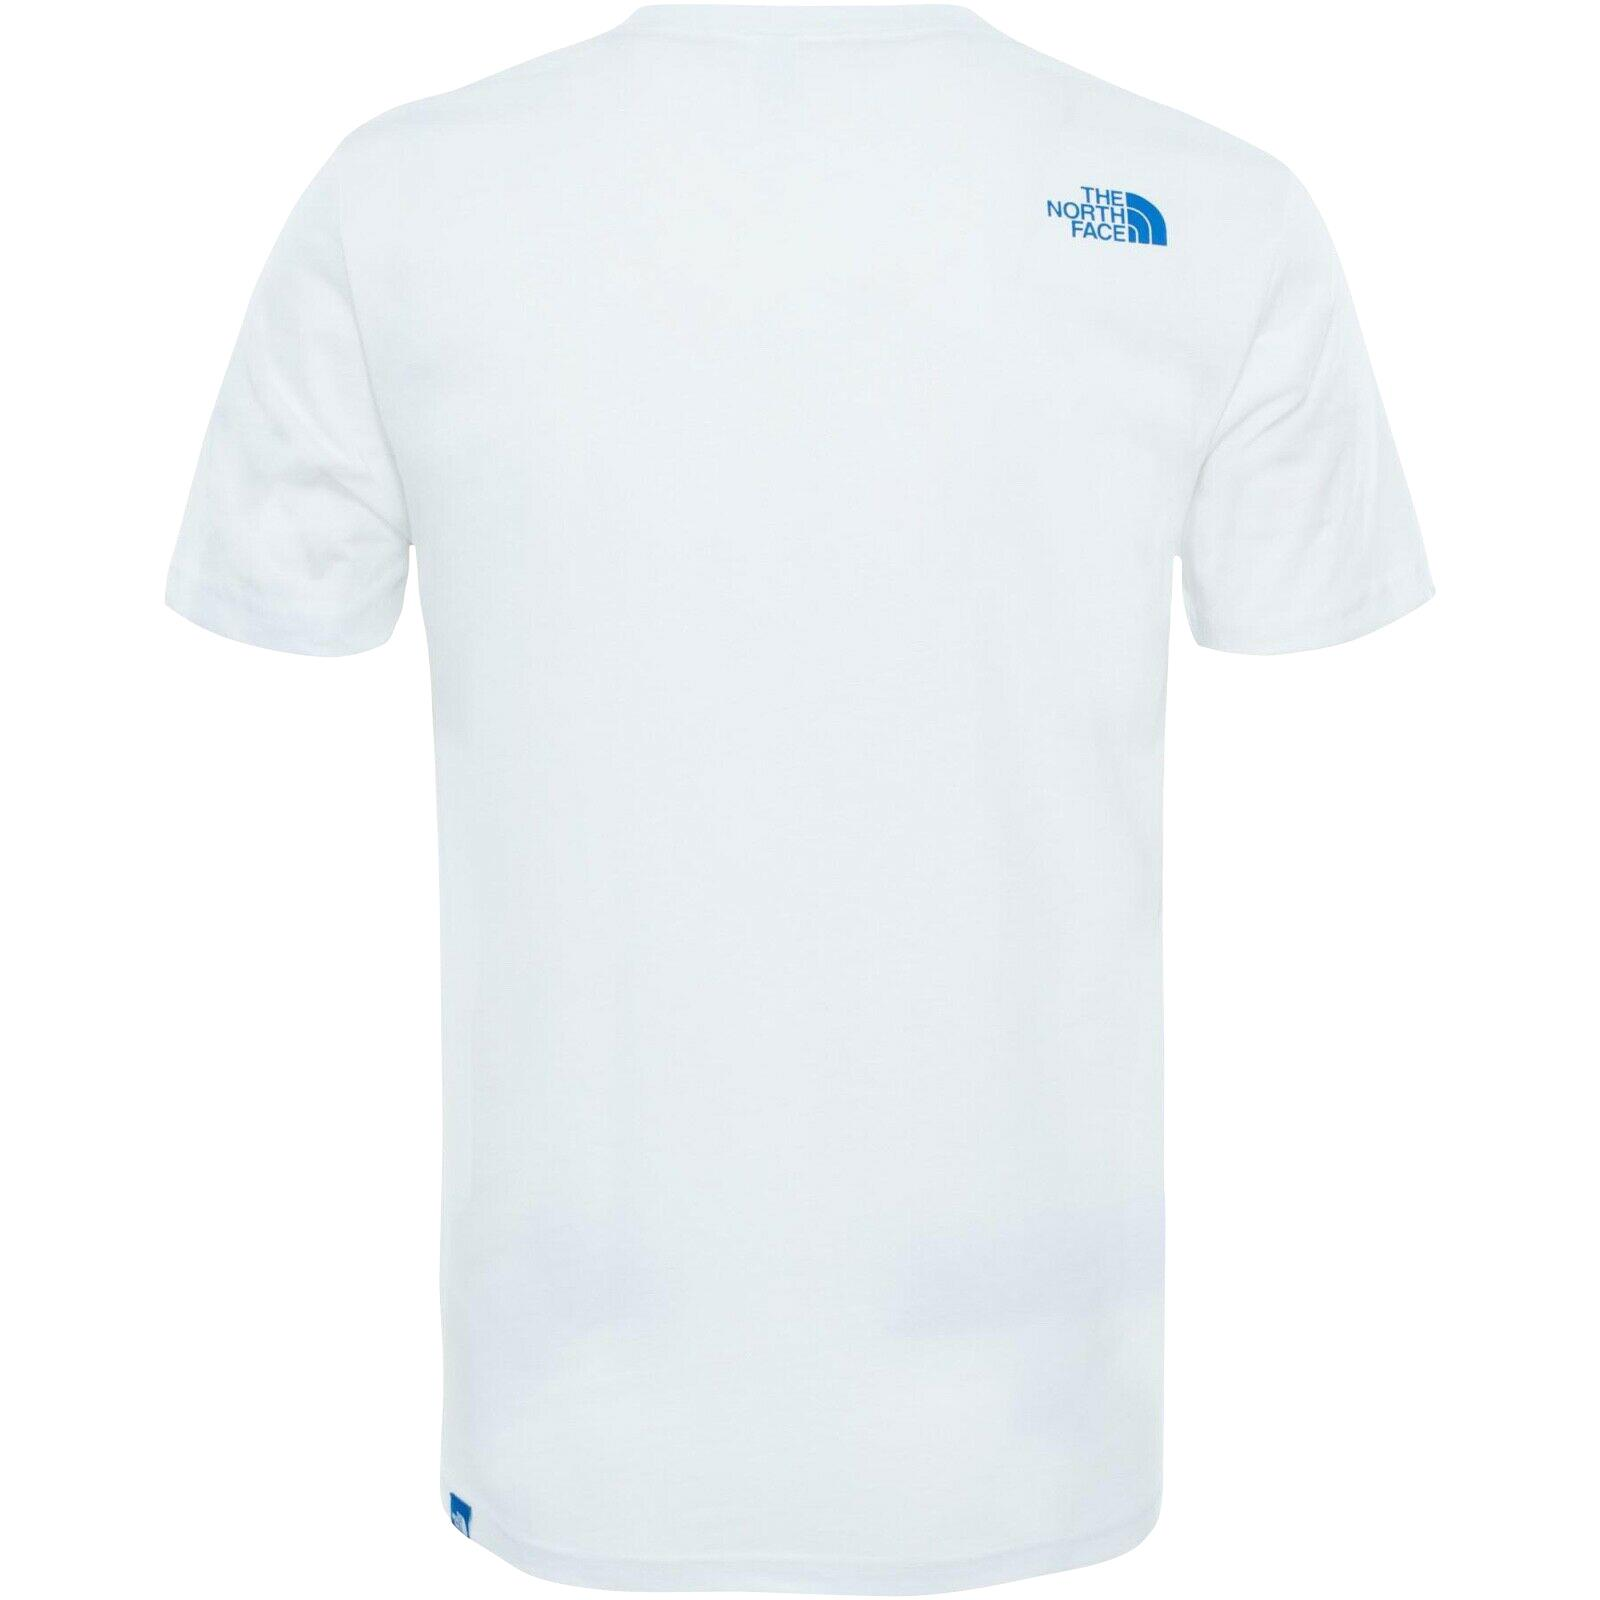 The-North-Face-Mens-TNF-Short-Sleeve-Tee-Cotton-T-Shirt-Crew-Neck-Top thumbnail 23